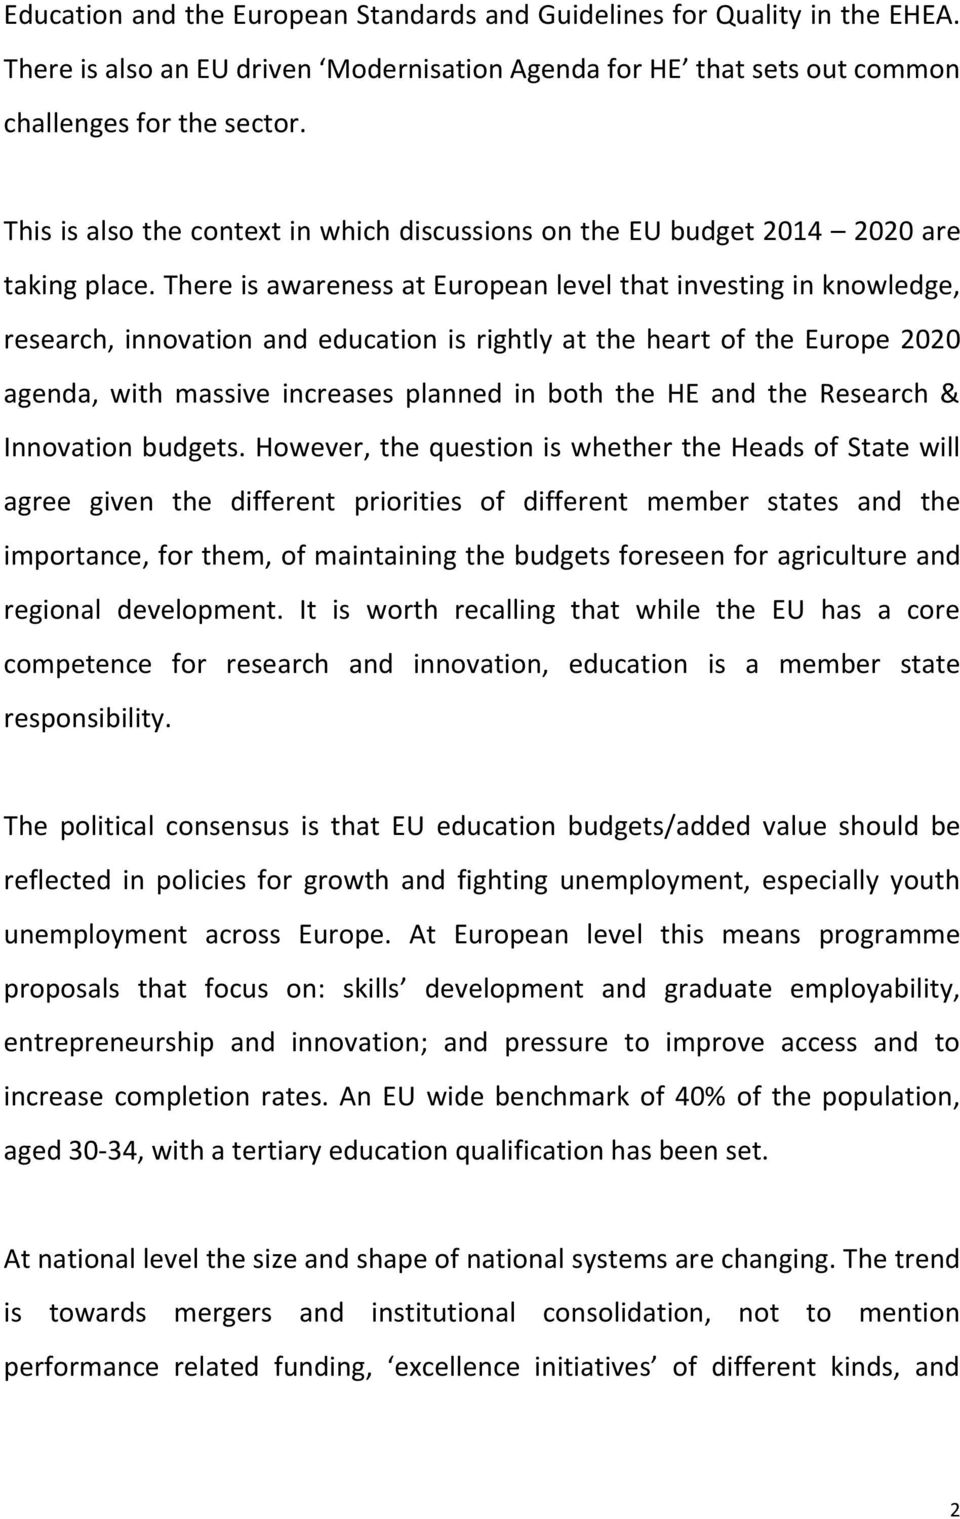 There is awareness at European level that investing in knowledge, research, innovation and education is rightly at the heart of the Europe 2020 agenda, with massive increases planned in both the HE